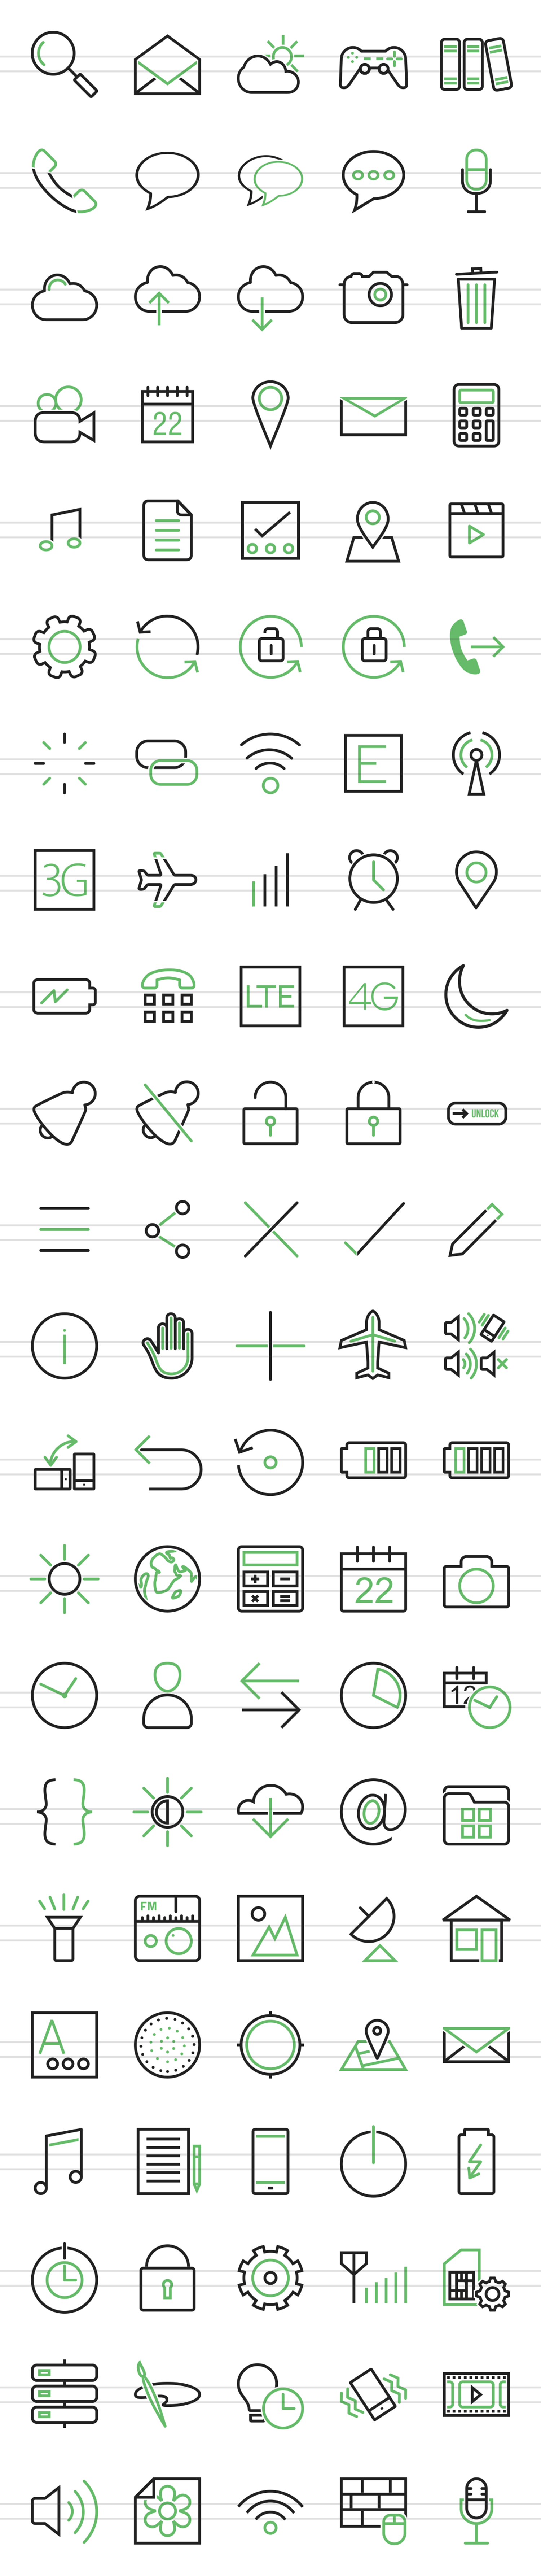 110 Mobile Apps Line Green & Black Icons example image 2